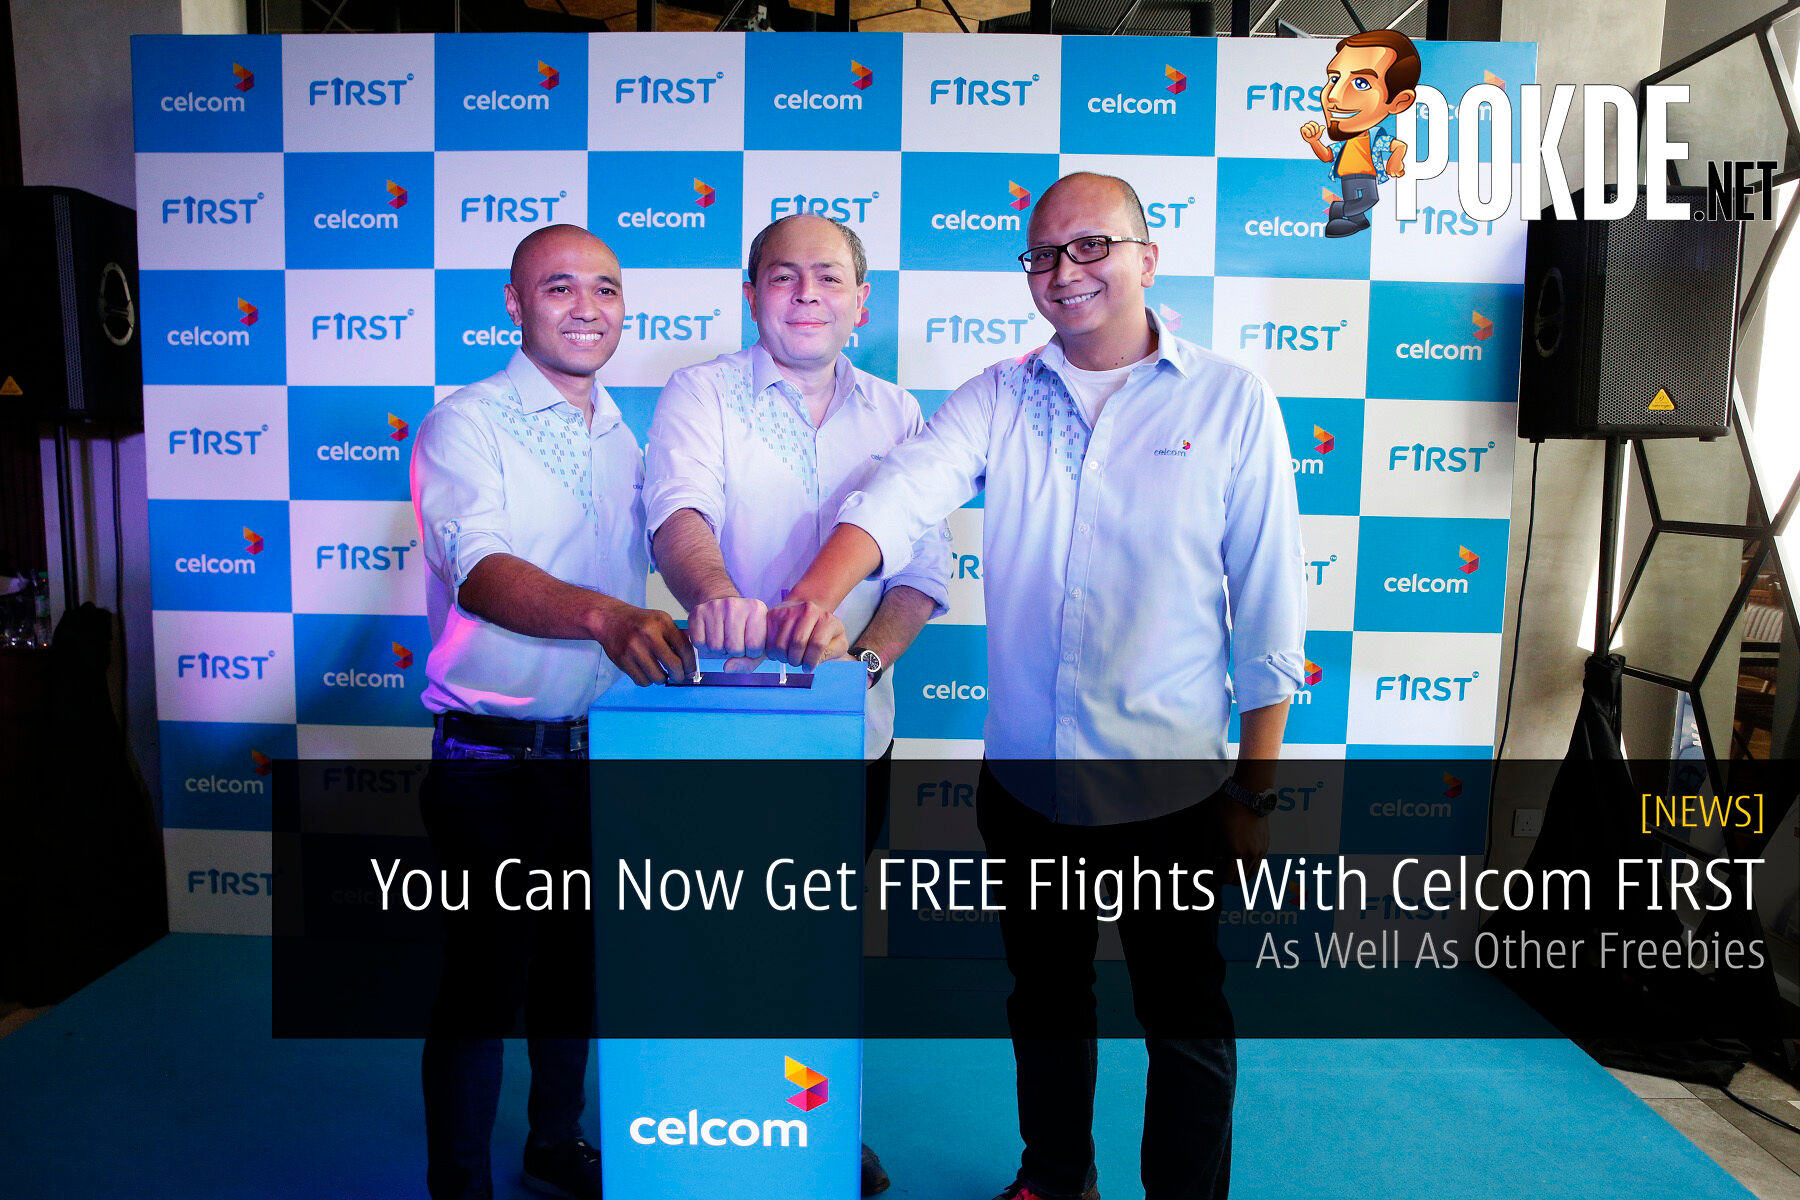 You Can Now Get FREE Flights With Celcom FIRST As Well As Other Freebies 21